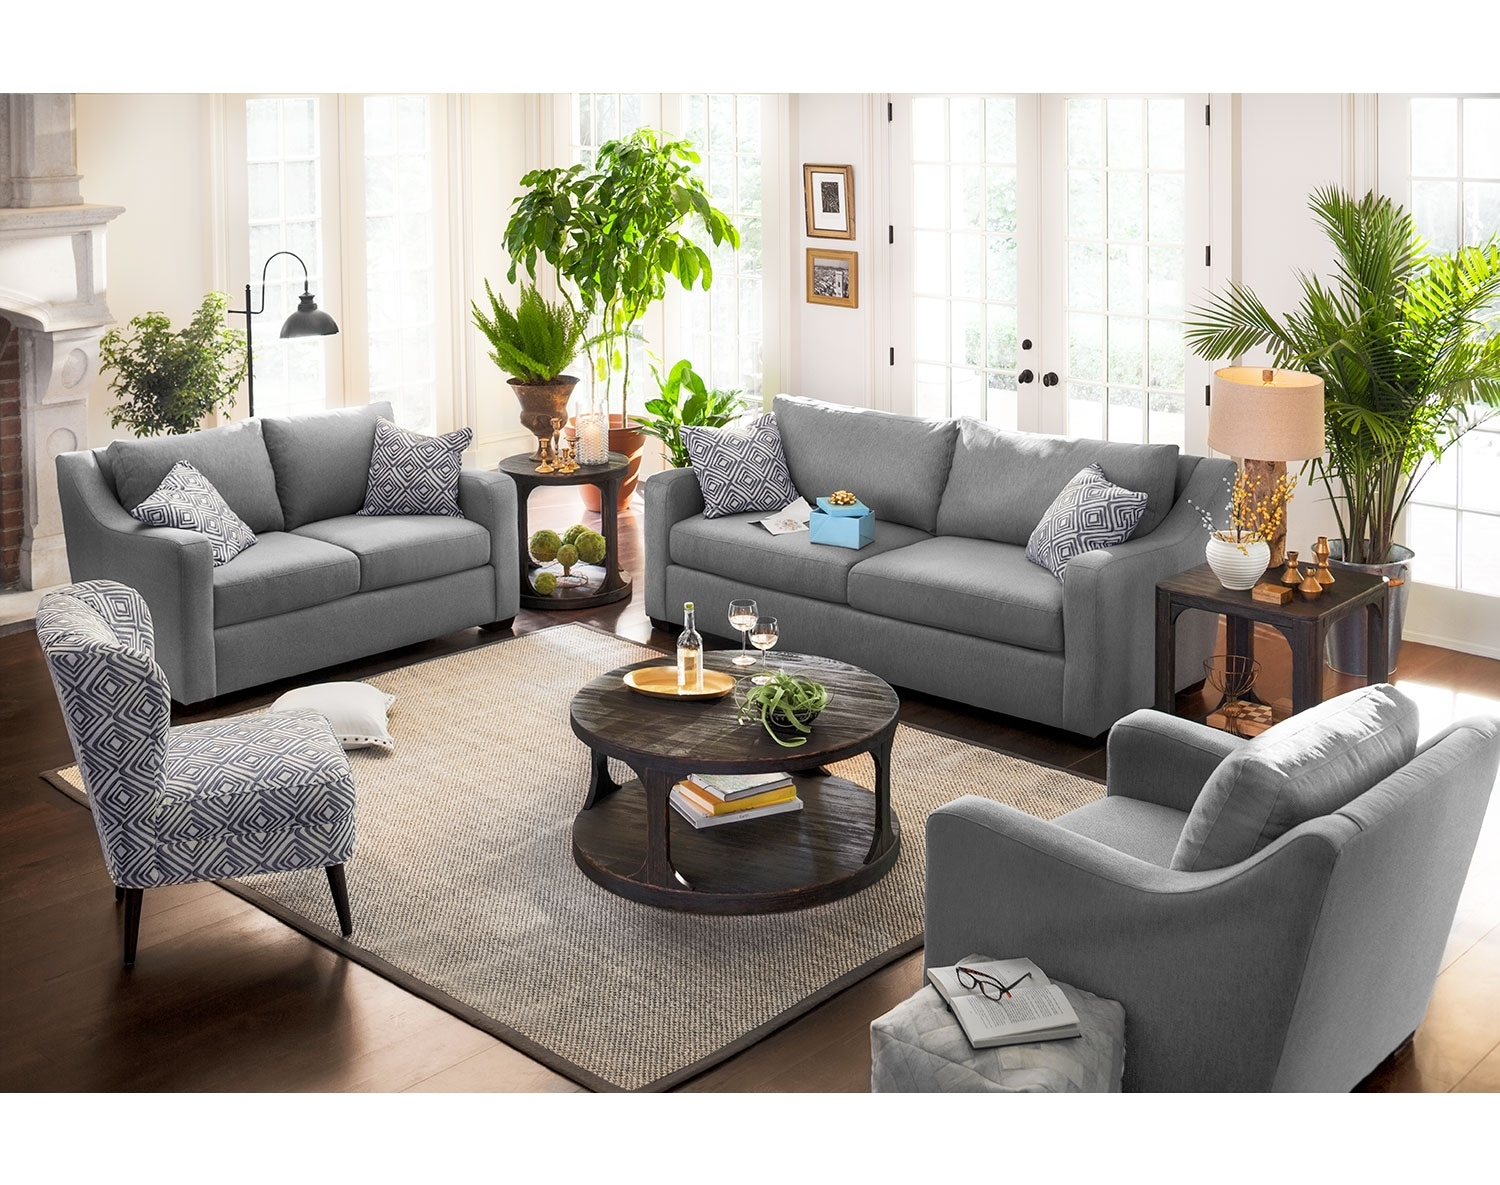 [The Jules Comfort Living Room Collection]